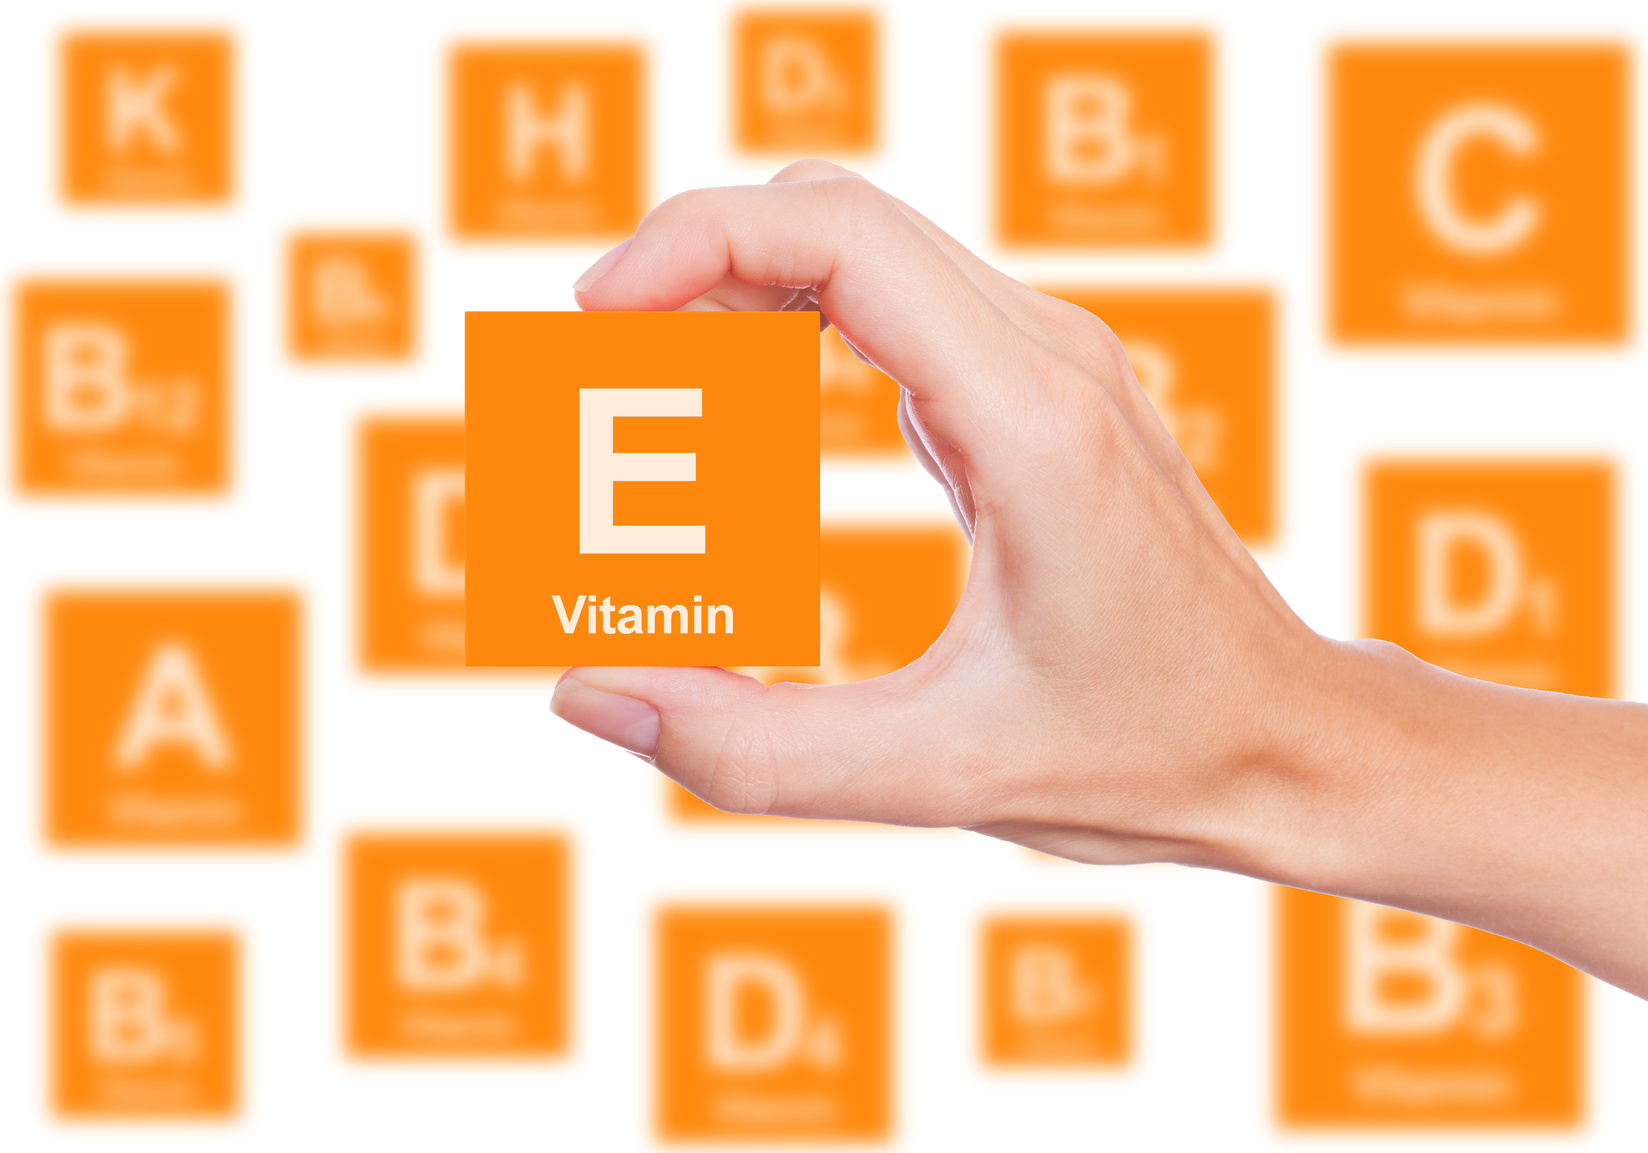 Hand holds a box of vitamin E